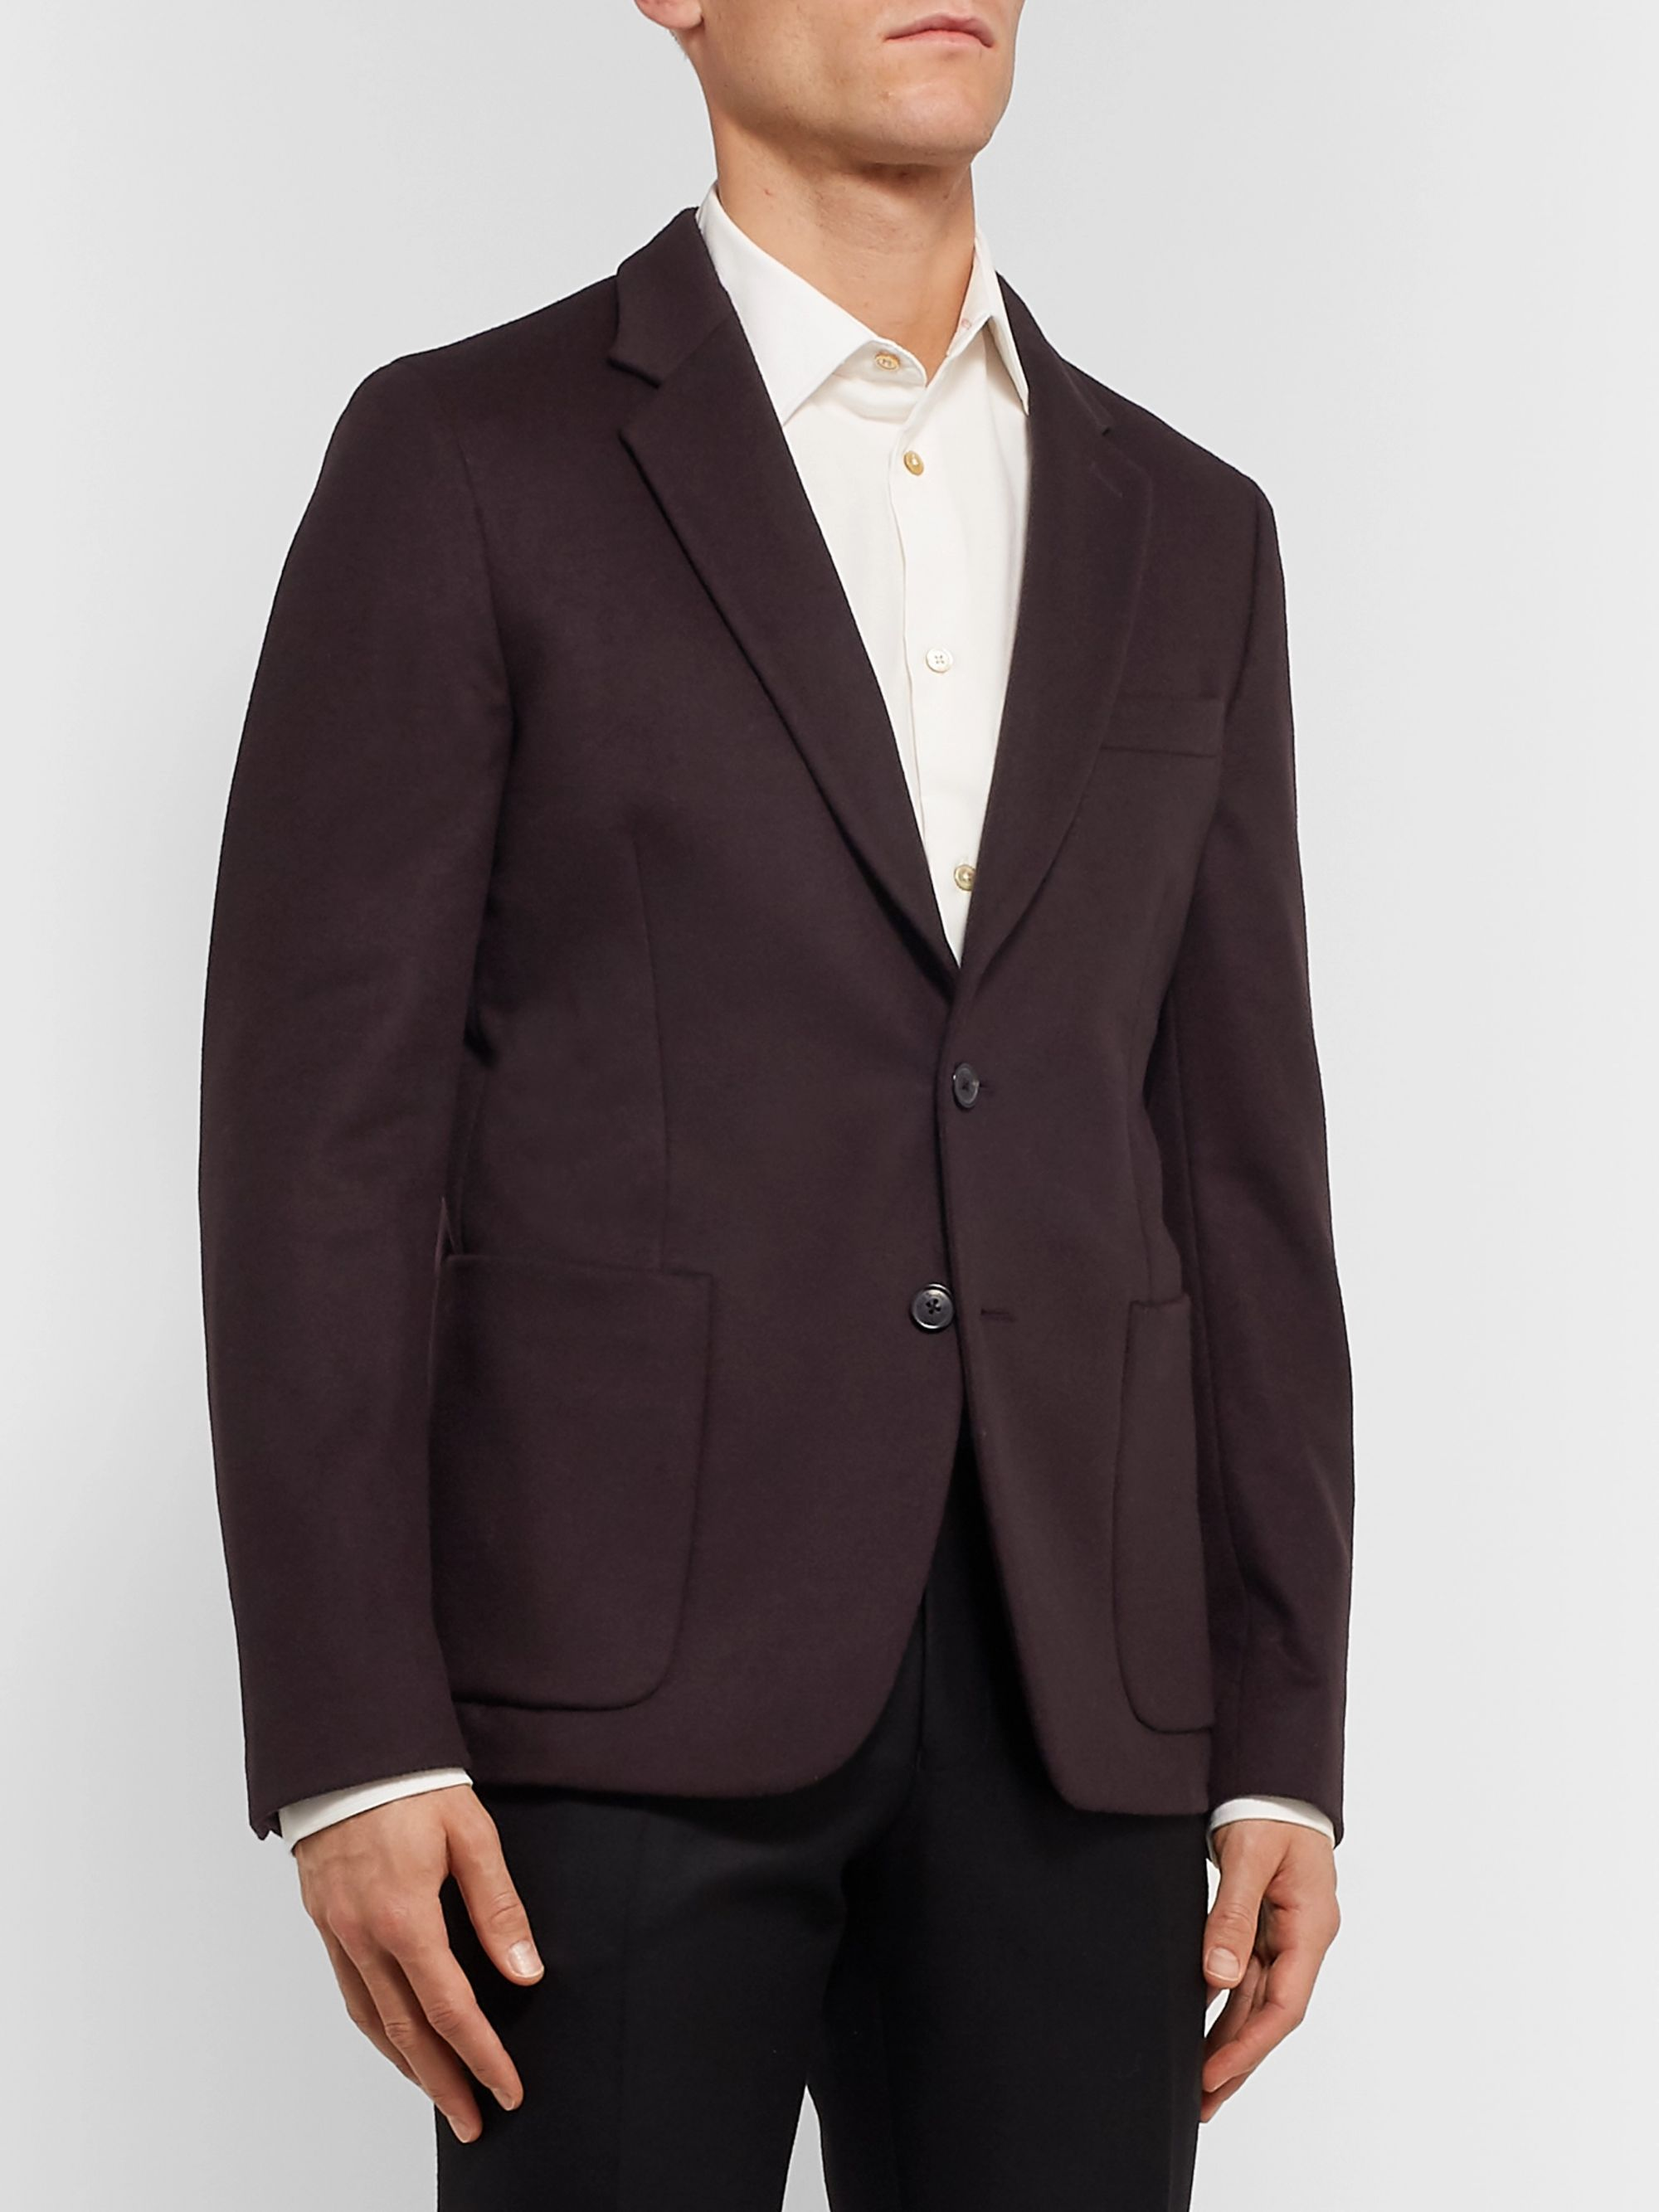 Paul Smith Merlot Slim-Fit Wool and Cashmere-Blend Suit Jacket